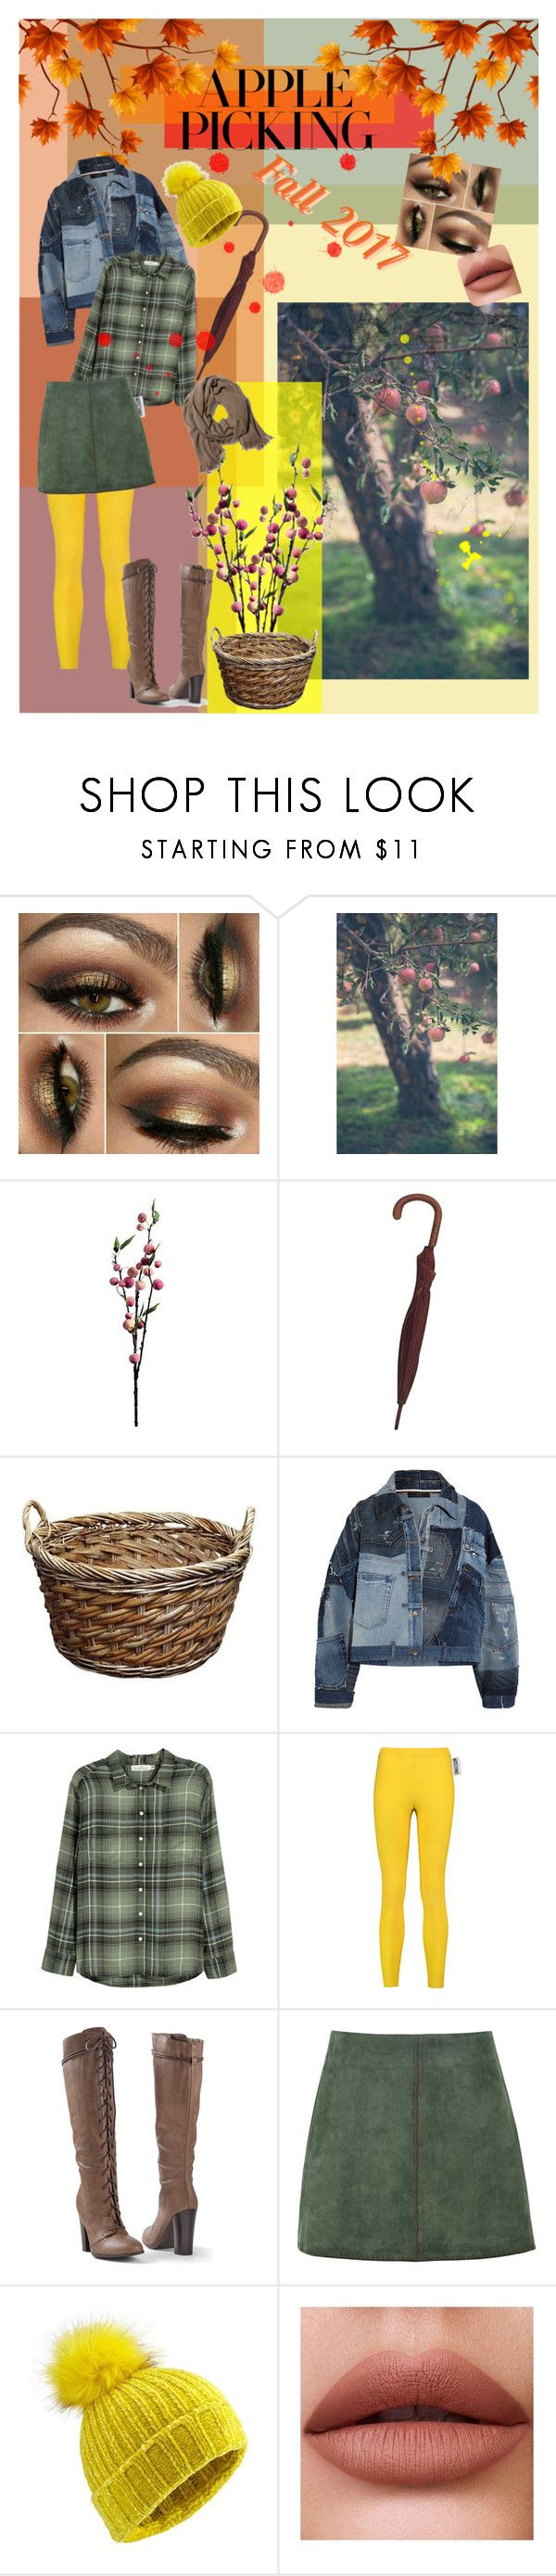 """""""Apple Picking: Fall 2017"""" by seattlesky ❤ liked on Polyvore featuring Wyld Home, Gucci, Dolce&Gabbana, H&M, Moschino, Venus, George J. Love and Miss Selfridge"""